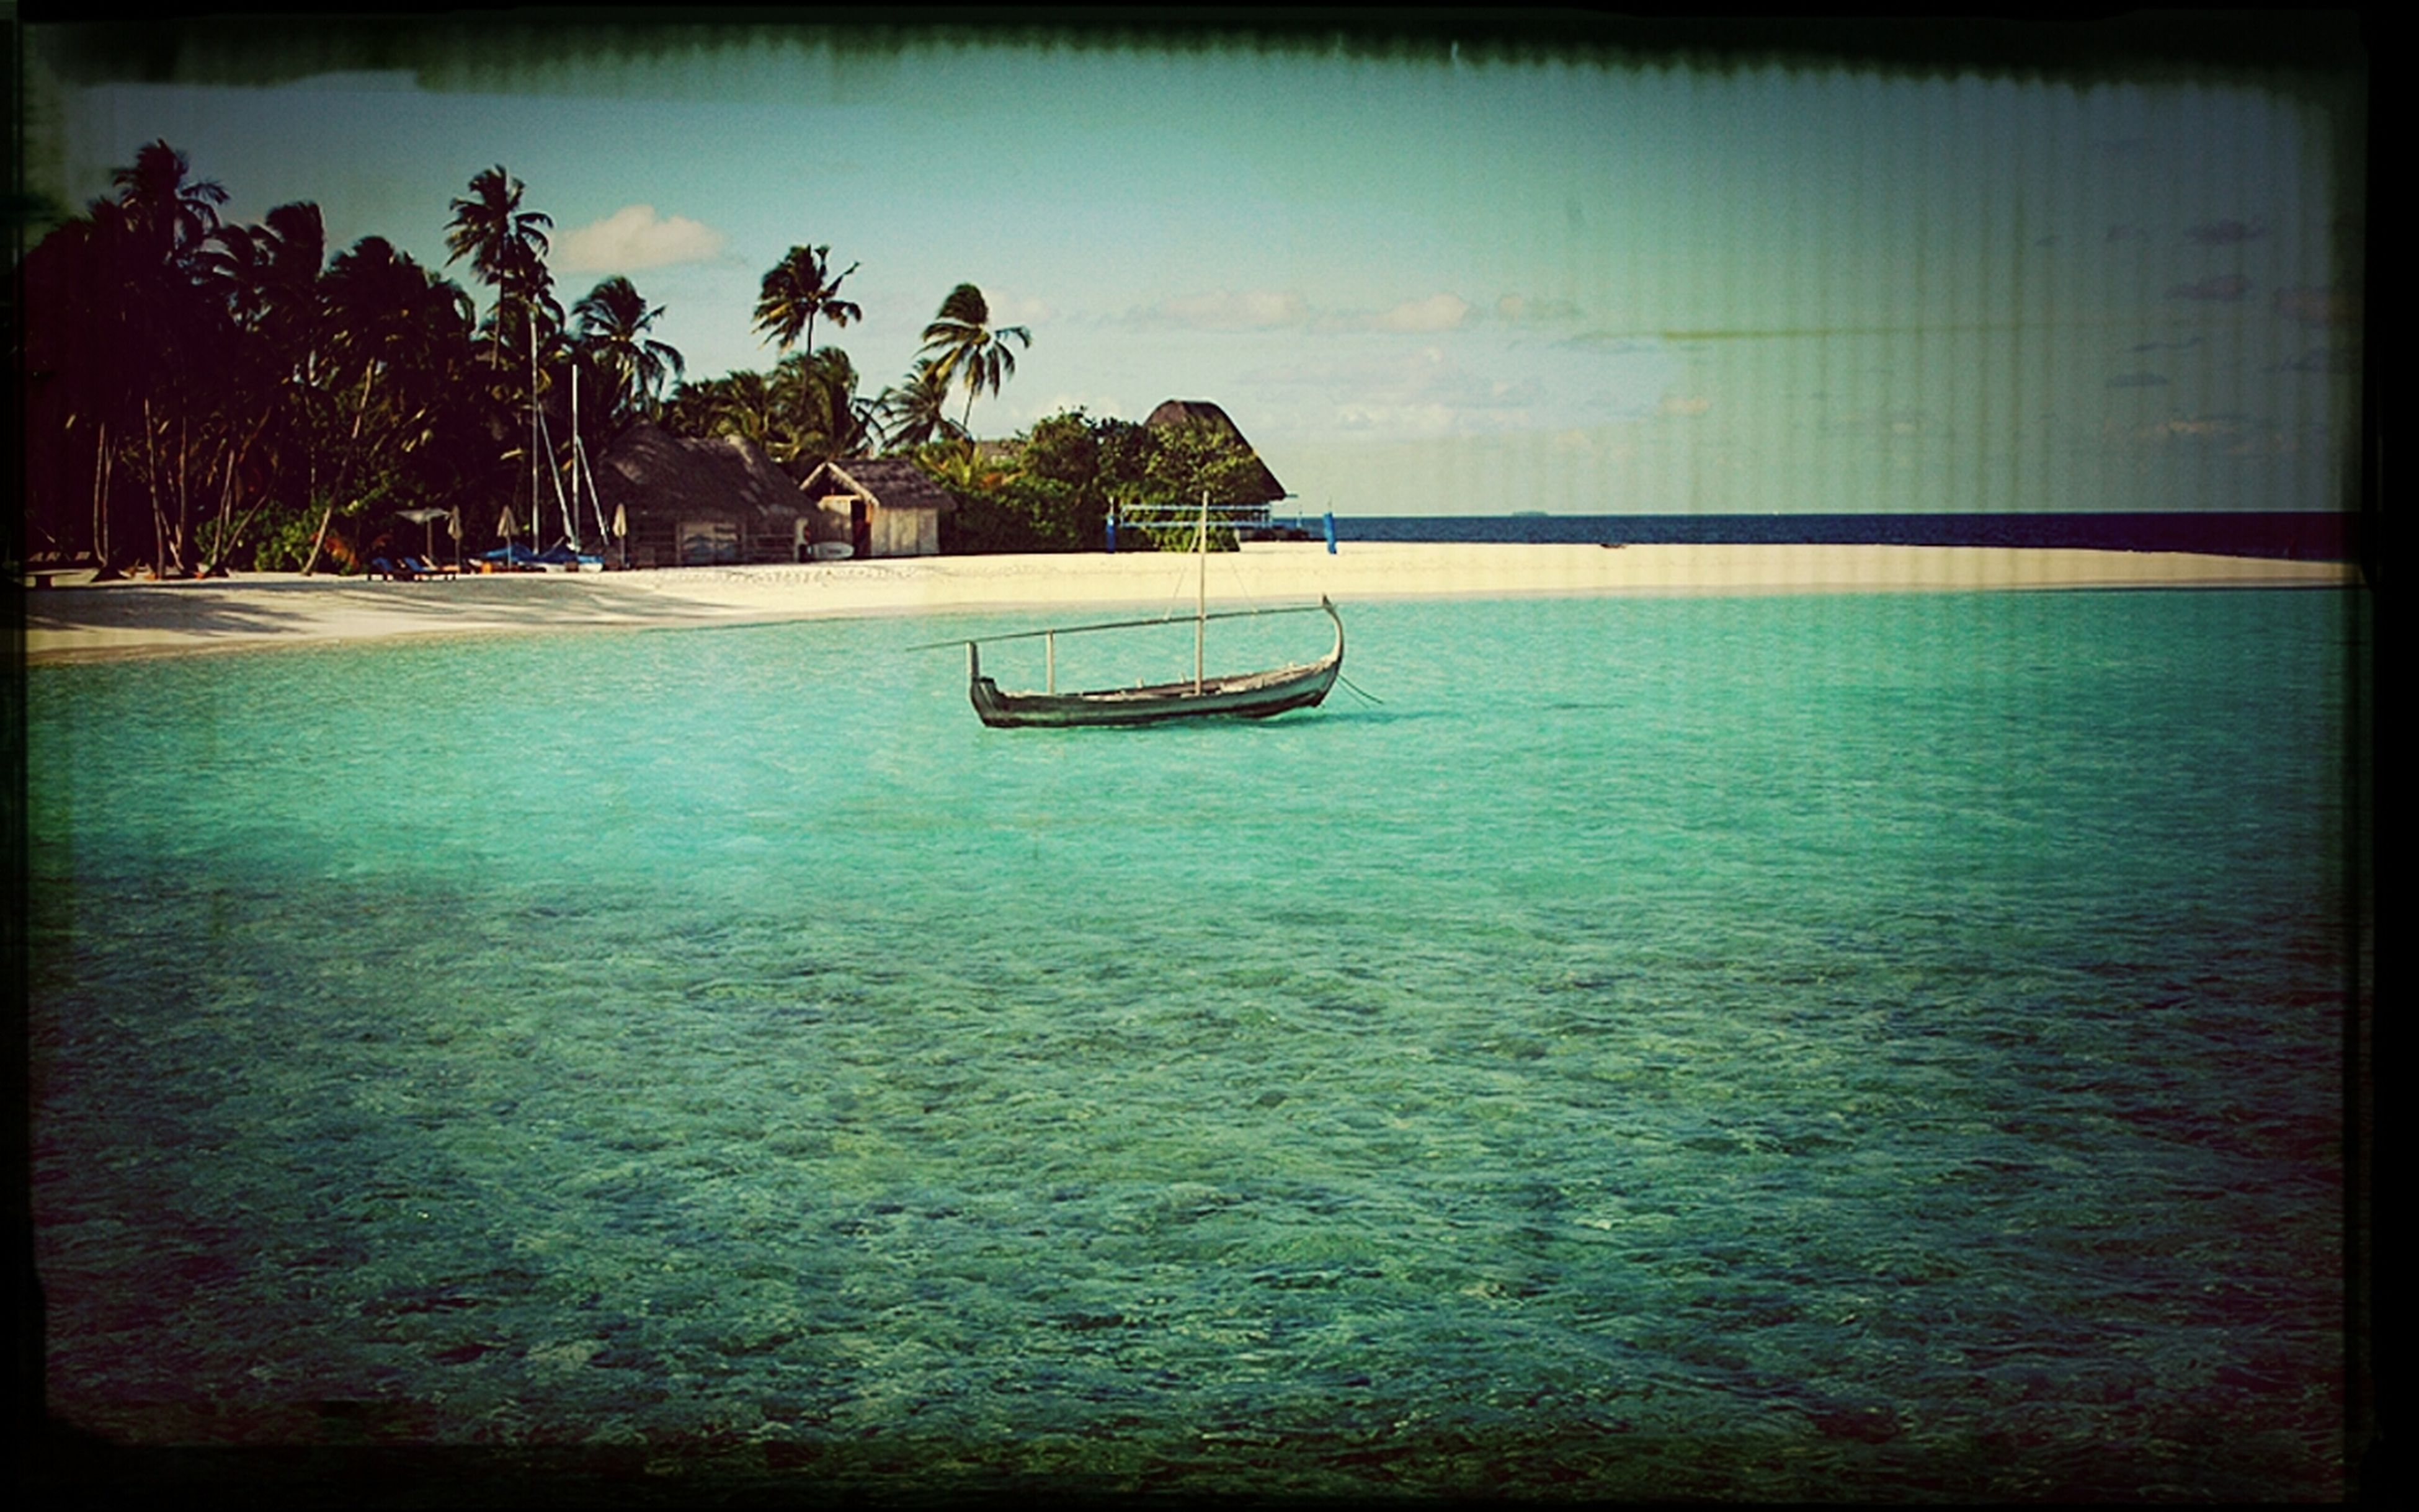 sea, water, horizon over water, palm tree, tree, tranquil scene, tranquility, sky, beach, scenics, beauty in nature, transfer print, nautical vessel, nature, auto post production filter, boat, shore, waterfront, idyllic, calm